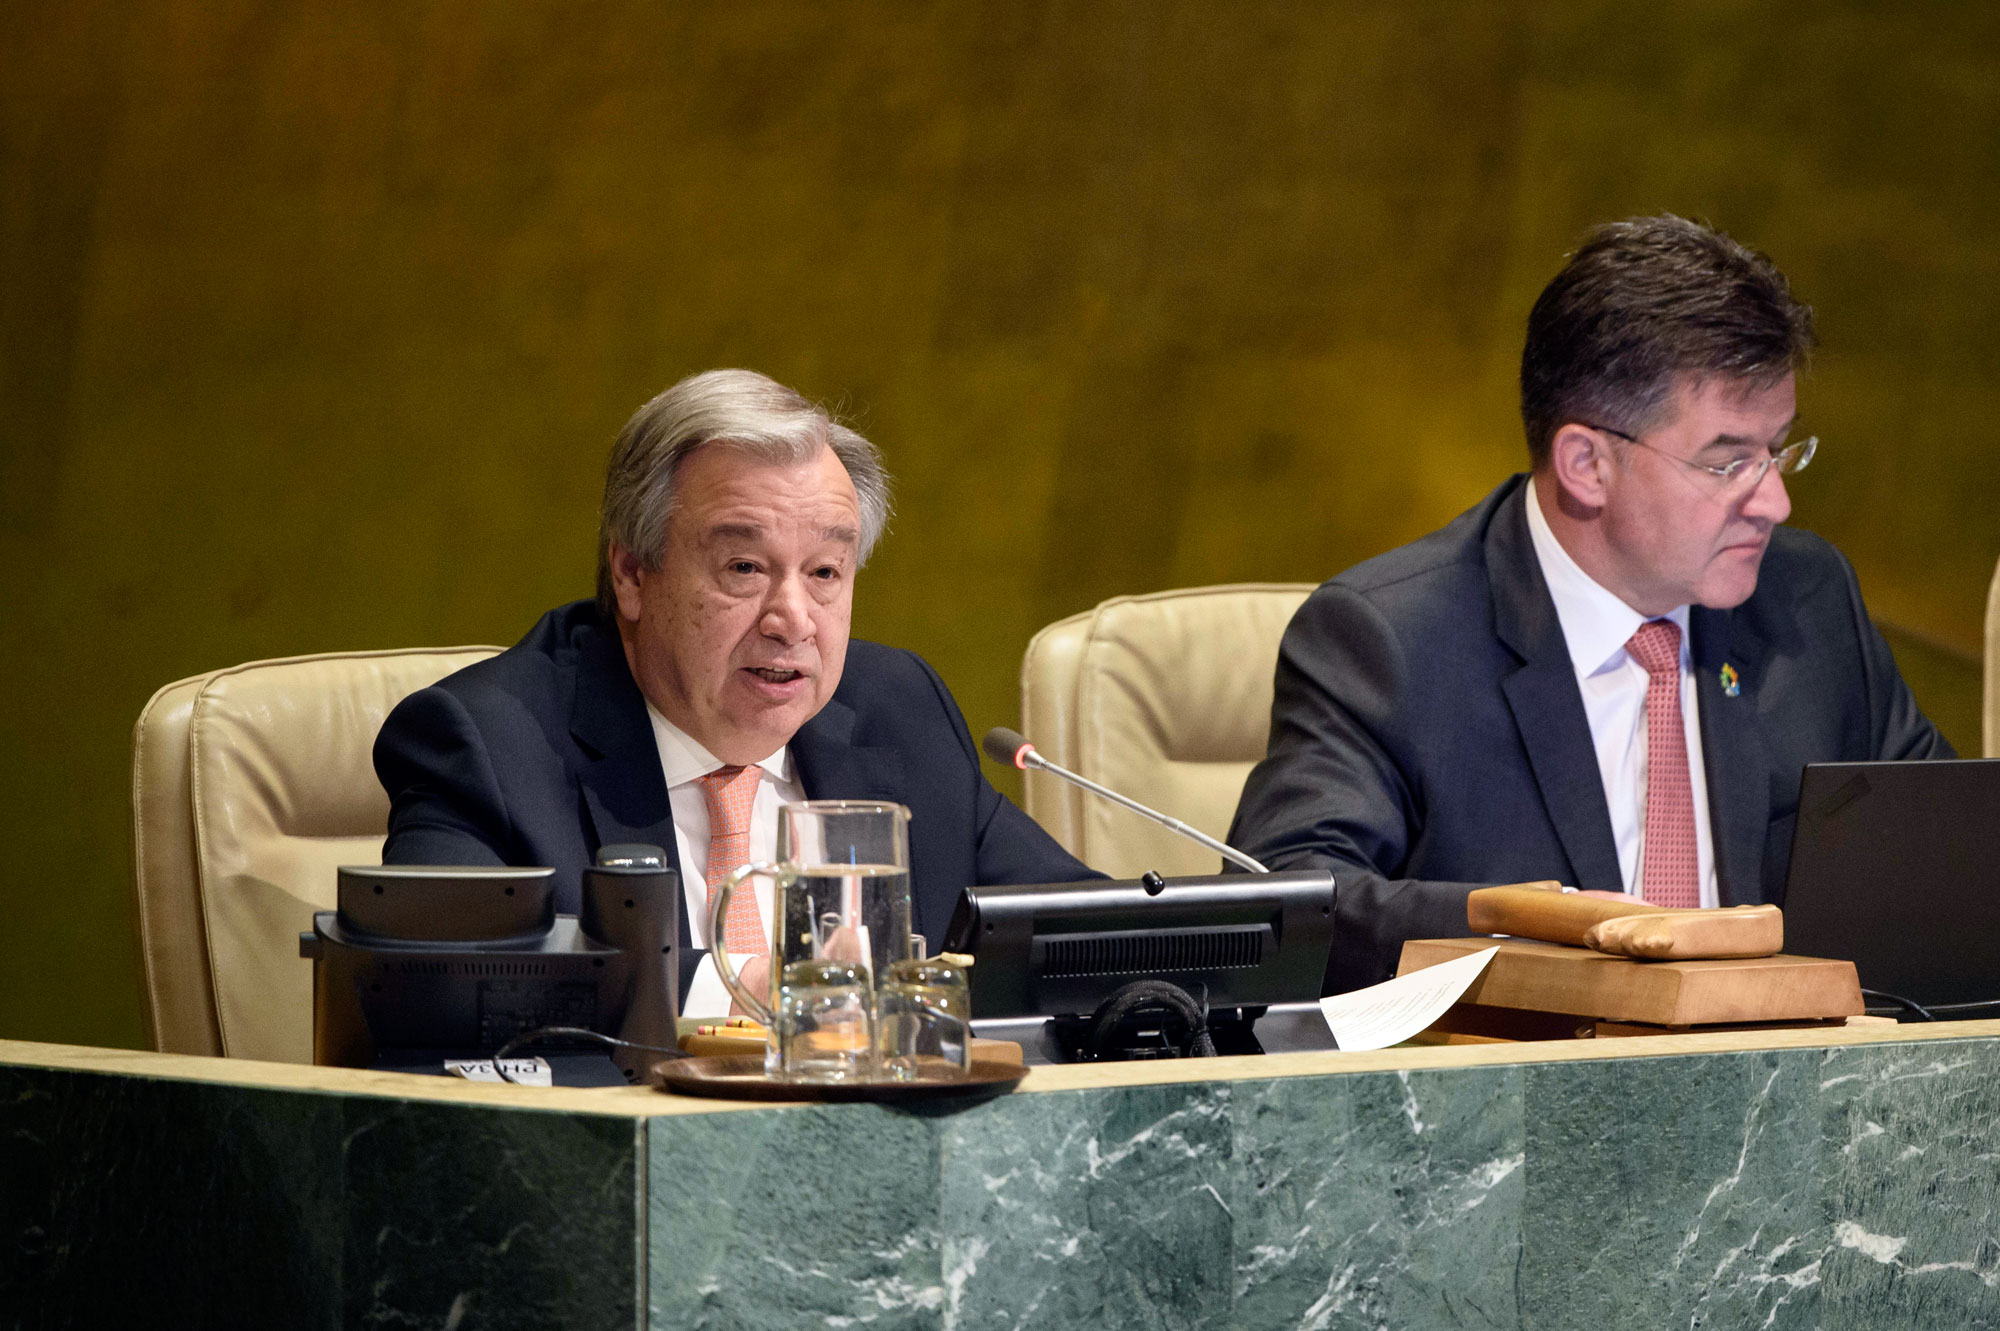 Secretary-General António Guterres (left) addresses the UN General Assembly meeting on the responsibility to protect and the prevention of genocide war crimes ethnic cleansing and crimes against humanity. UN Photo/Loey Felipe